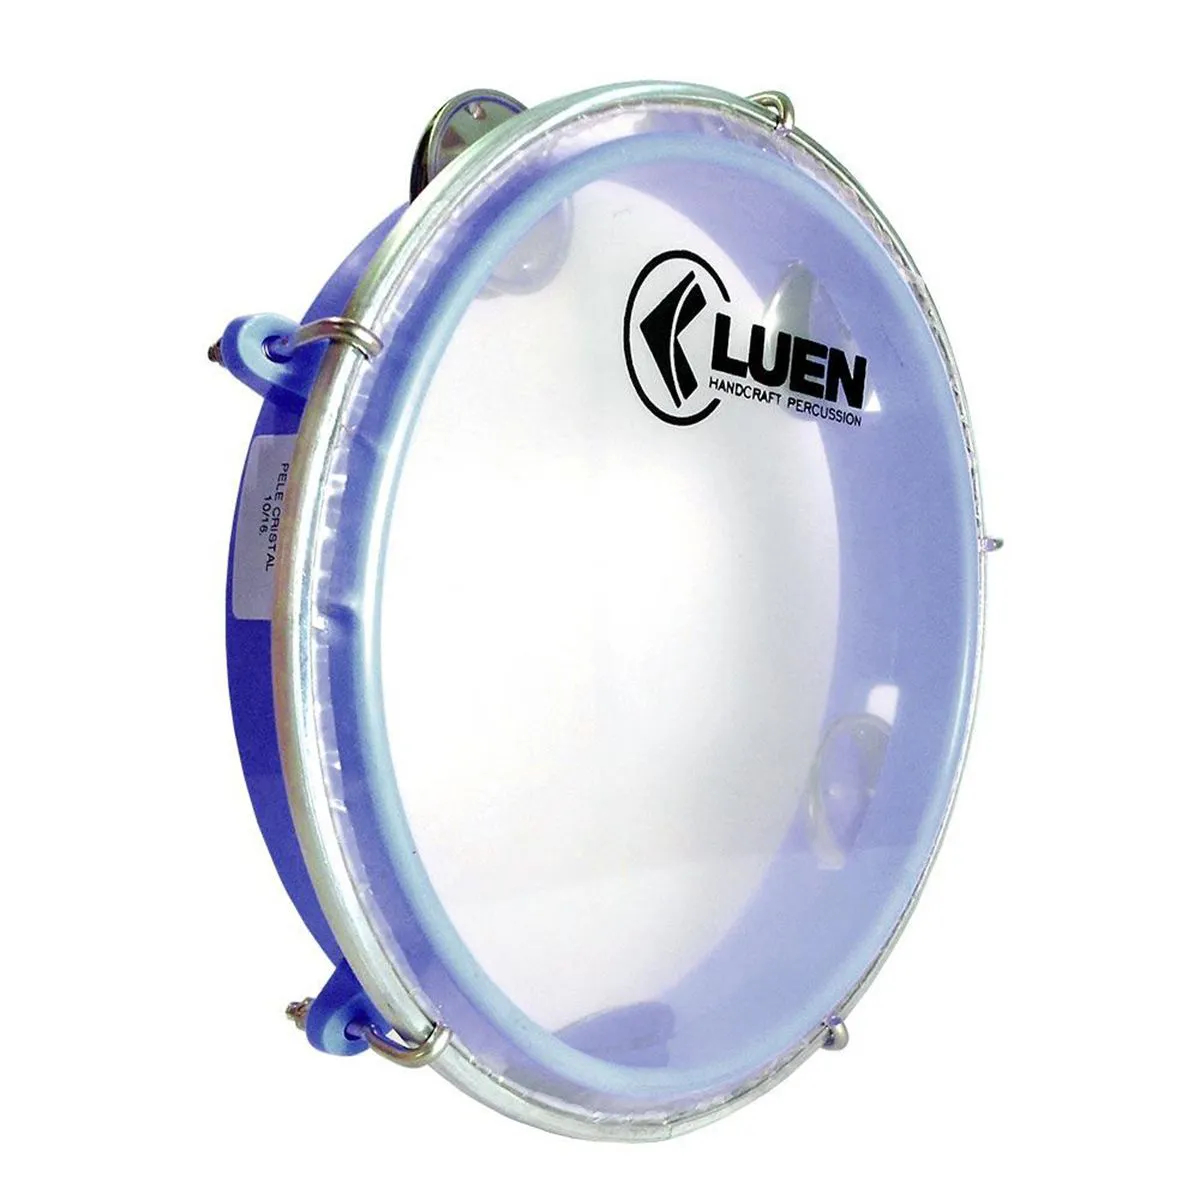 Pandeiro Junior Luen Percussion 8 Aro ABS Azul Pele Cristal